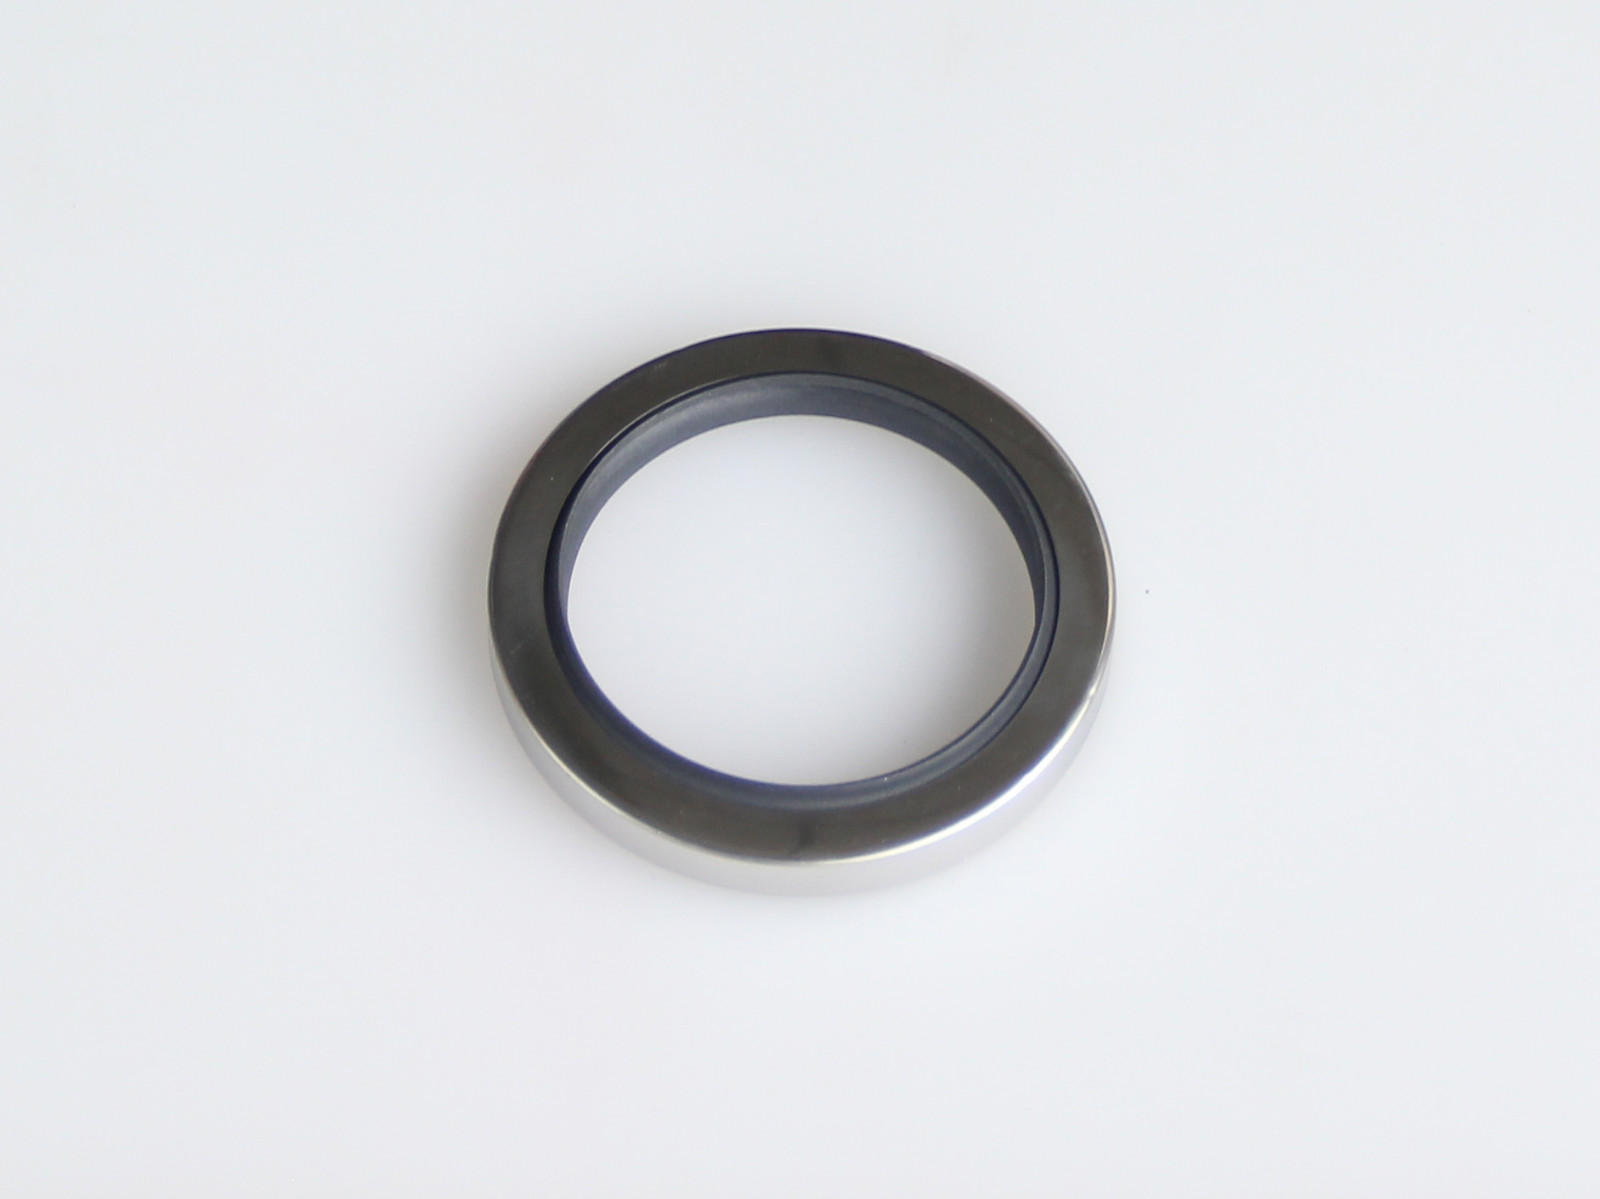 DSH-Oil Seals, C Type-double Lip Stainless Steel Ptfe Rotary Oil Seals-1